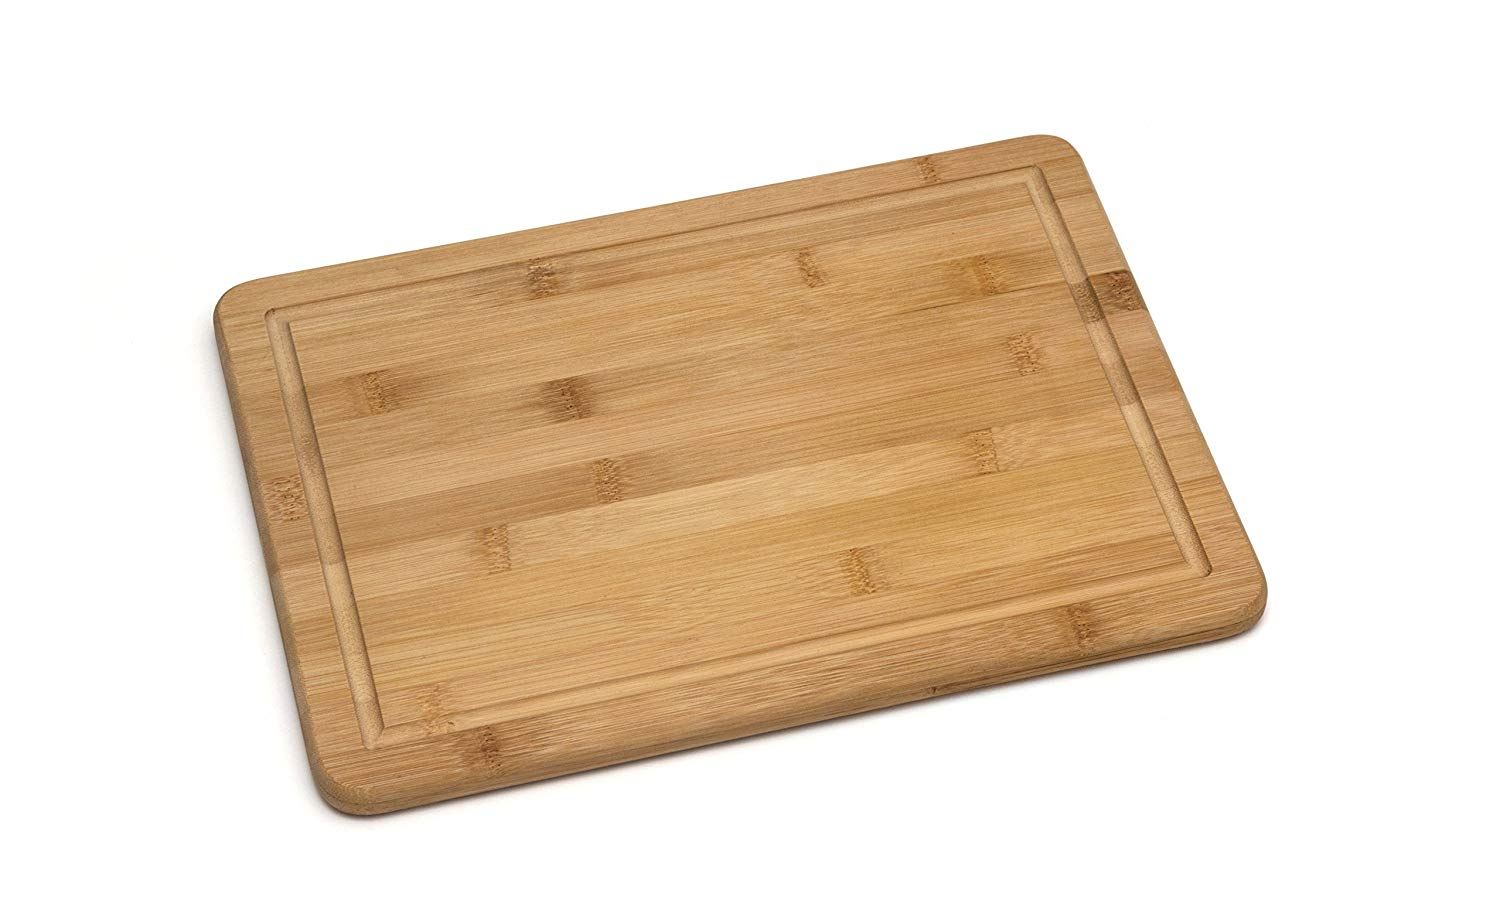 """Lipper International 8817 Bamboo Wood Kitchen Cutting and Serving Board with Non-Slip Cork Backing, Medium, 13-3/4"""" x 9-3/4"""" x 5/8"""""""